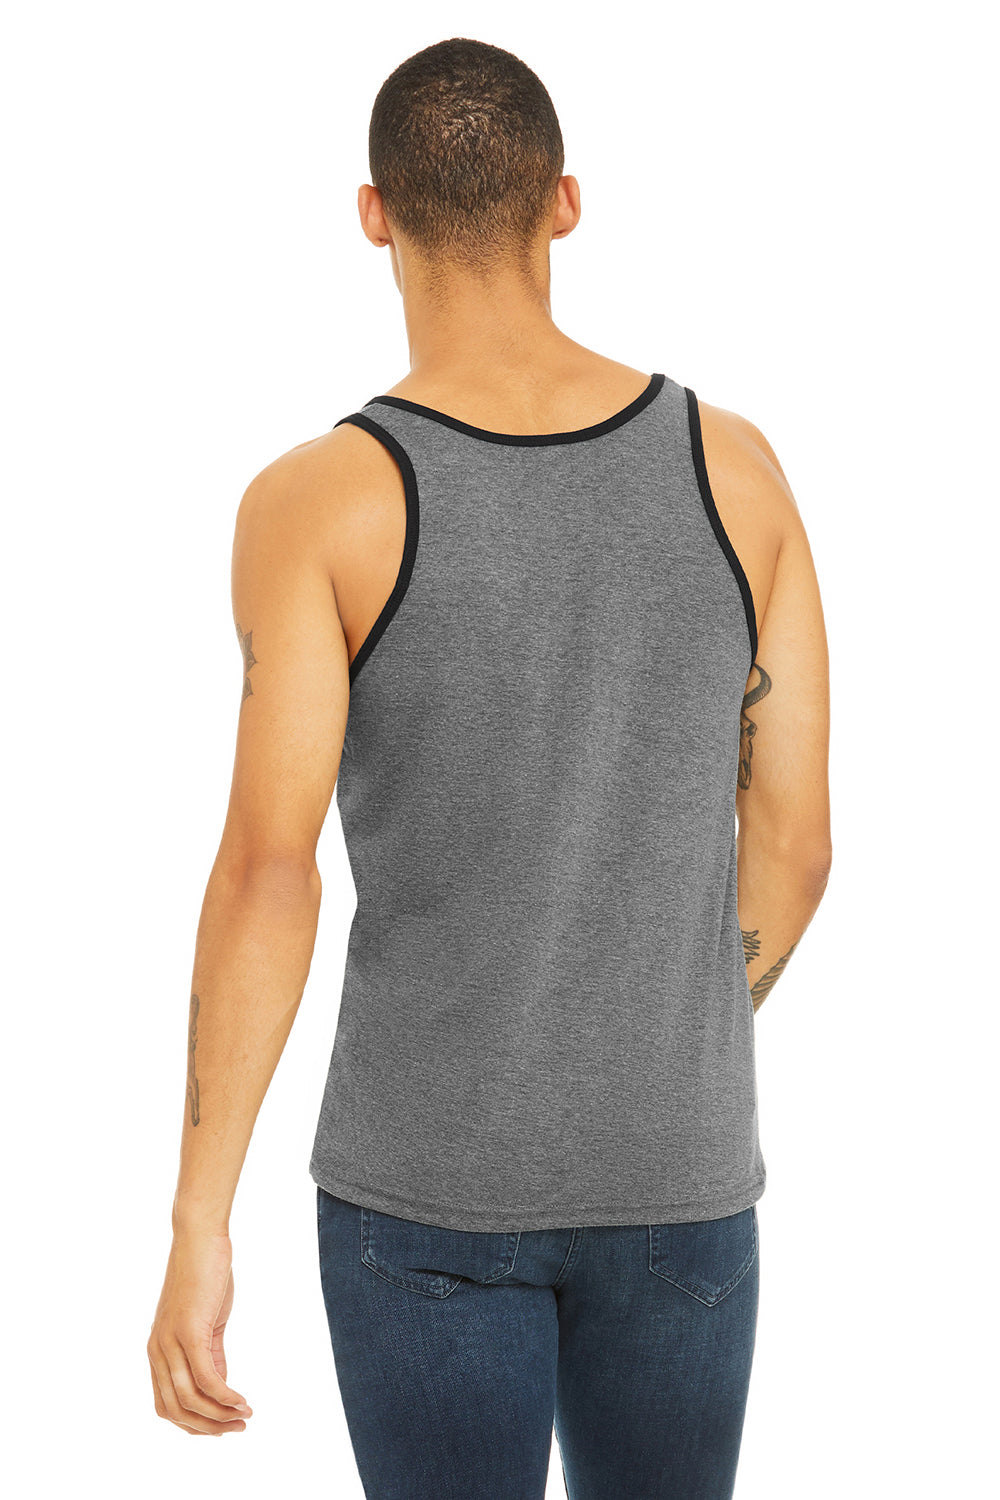 Bella + Canvas 3480 Mens Jersey Tank Top Heather Deep Grey/Black Back